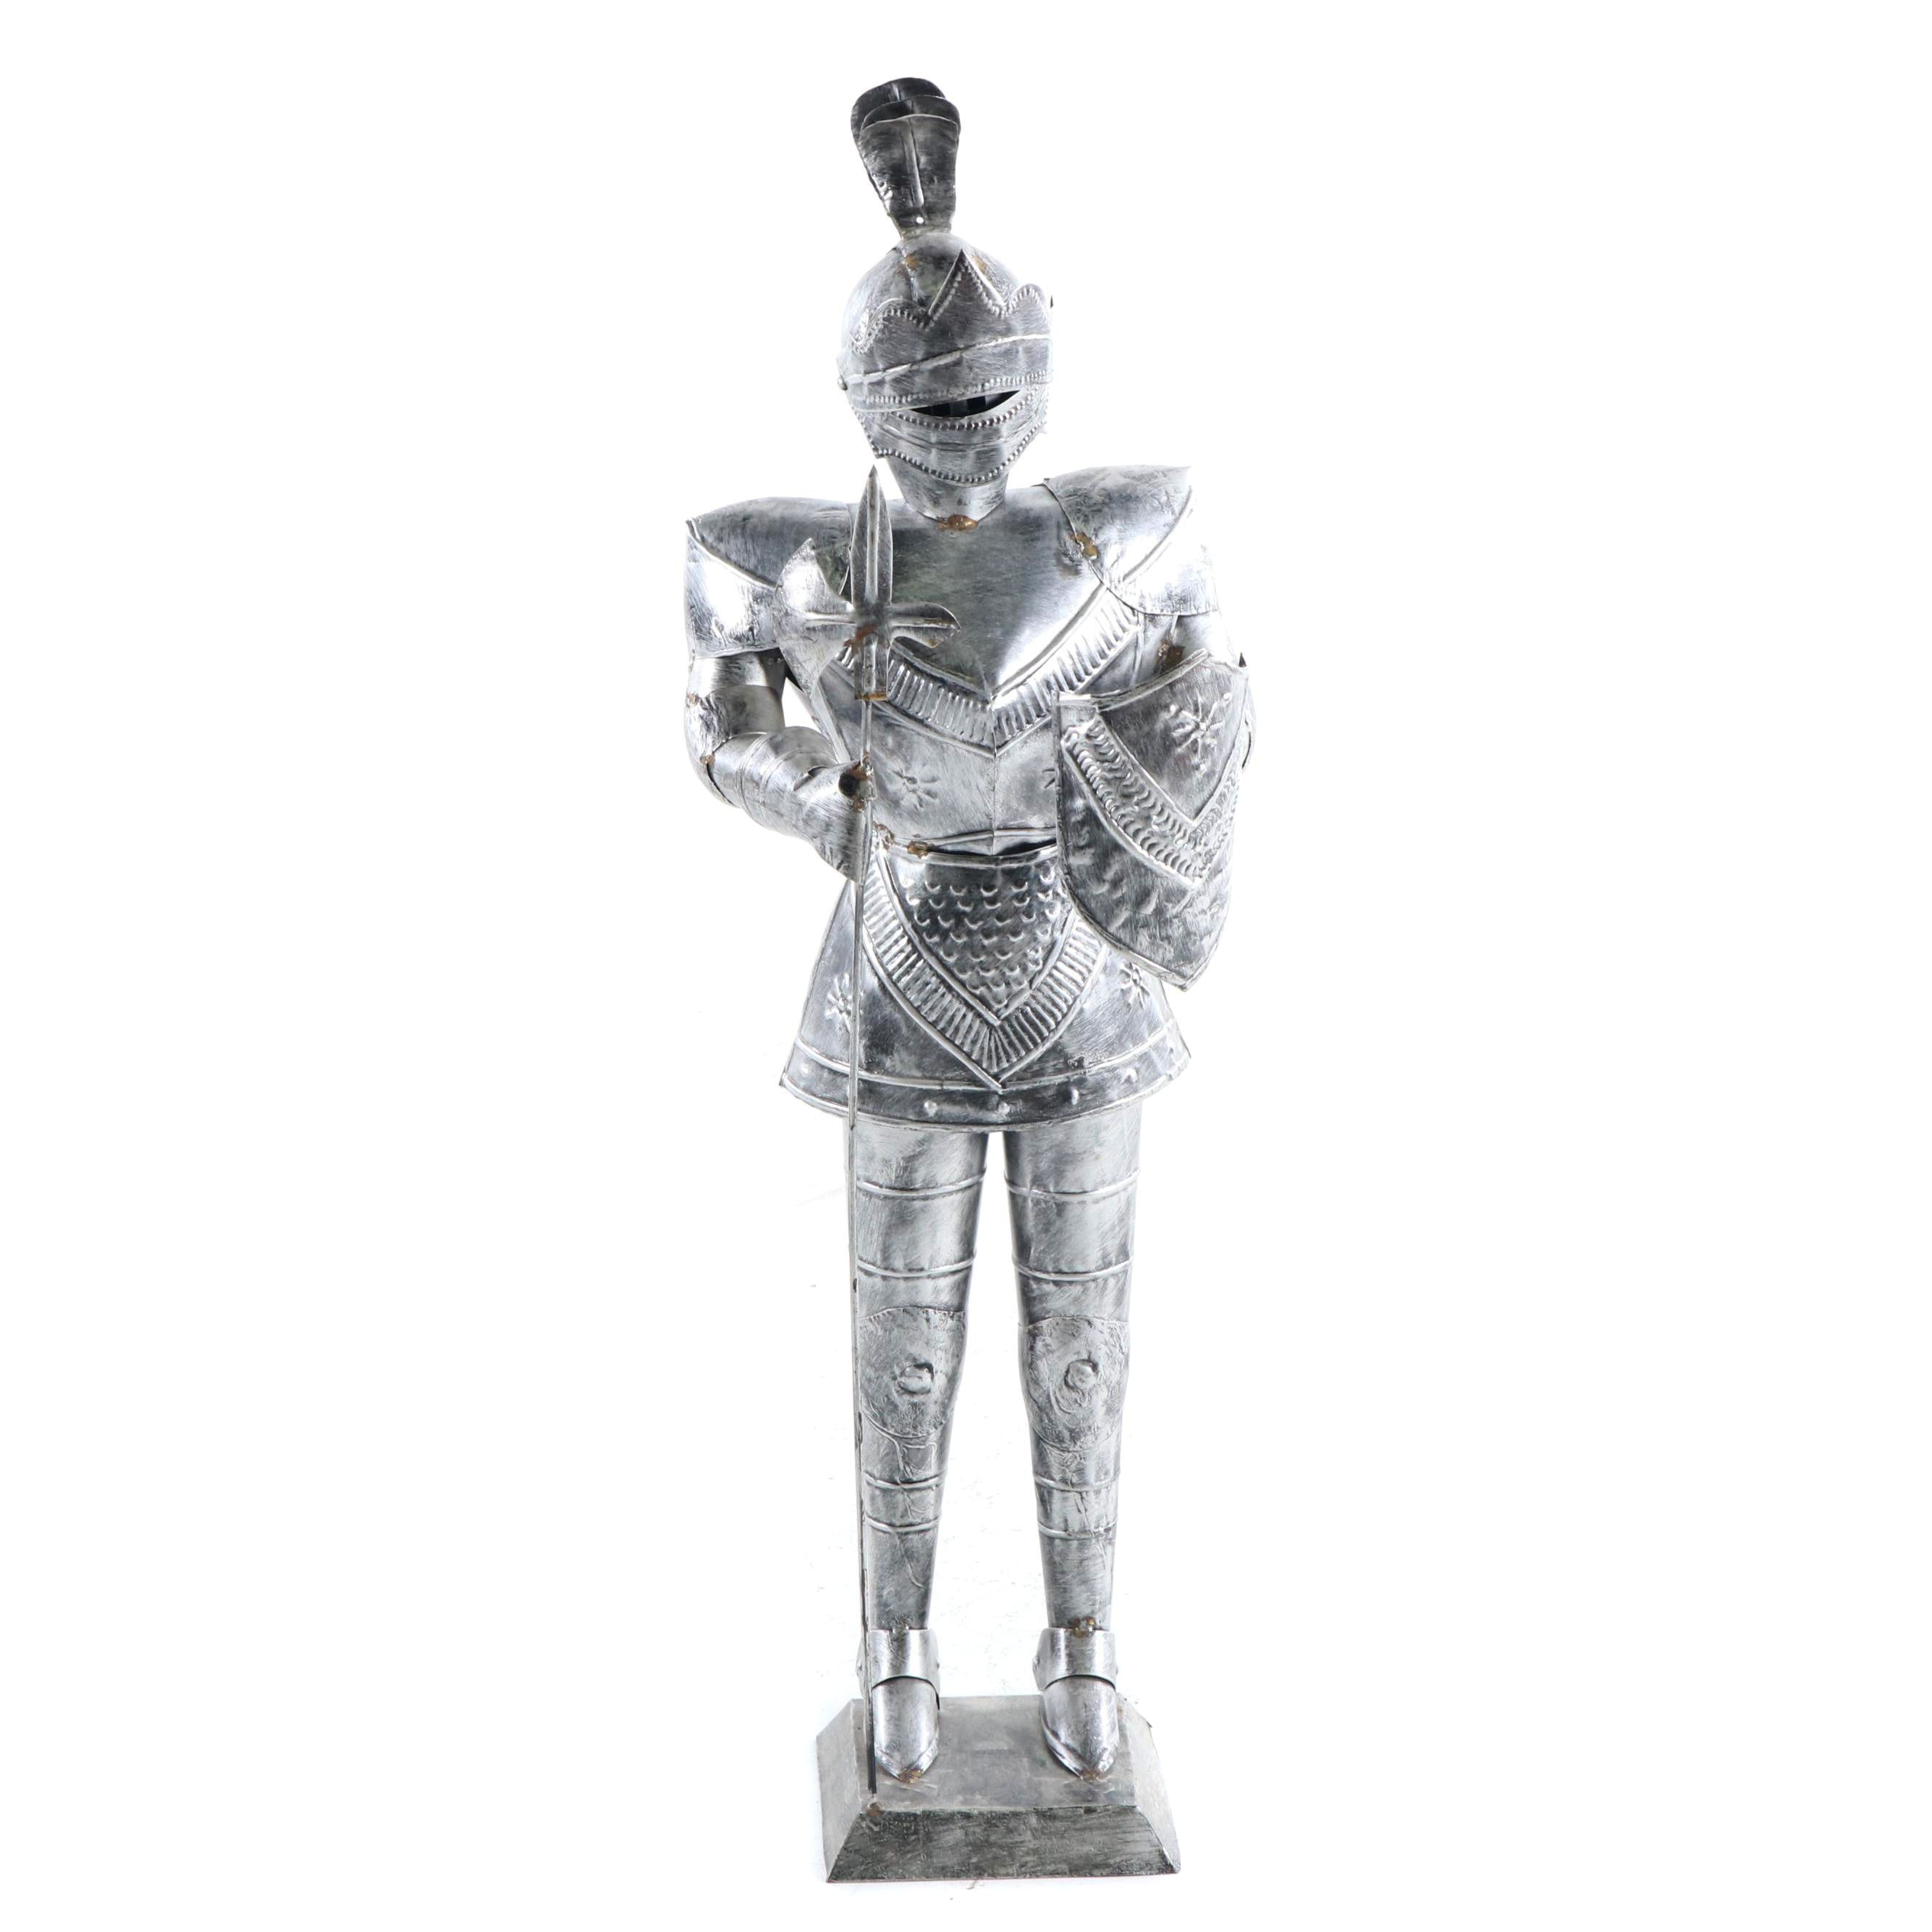 Tin Knight's Suit of Armor Sculpture